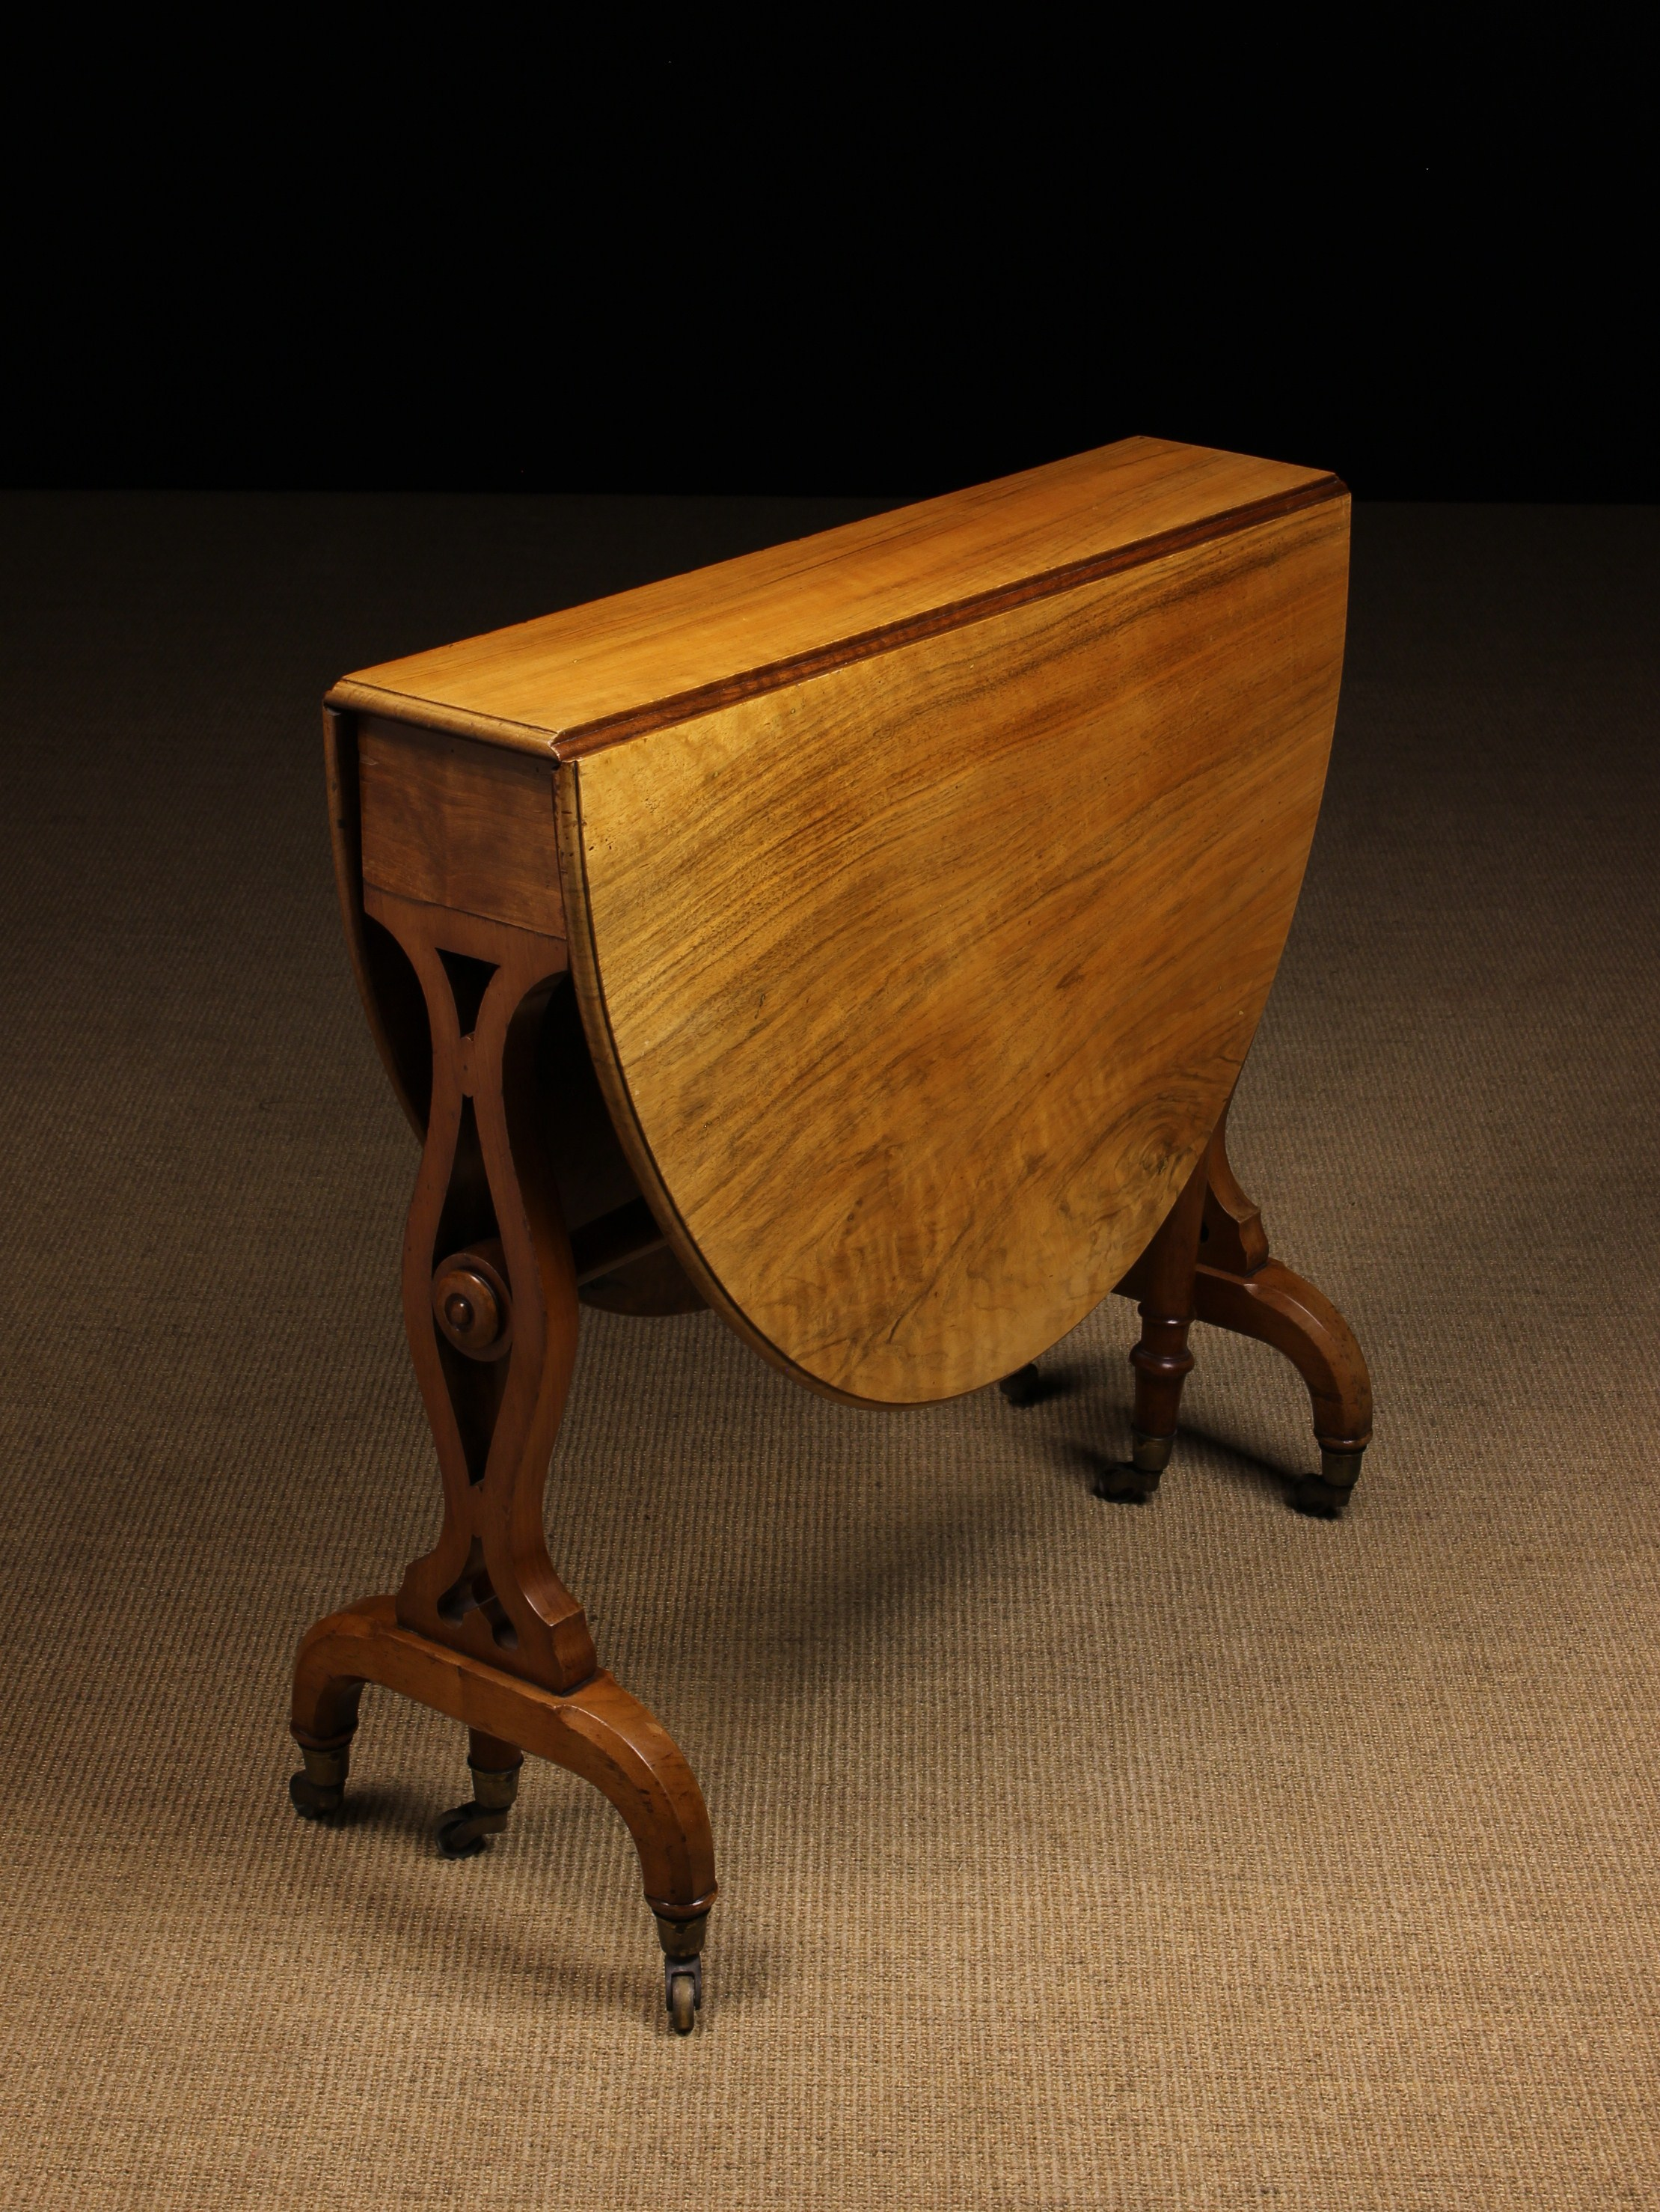 A Fine Early Victorian Holland & Sons Walnut Sutherland Table. - Image 2 of 2